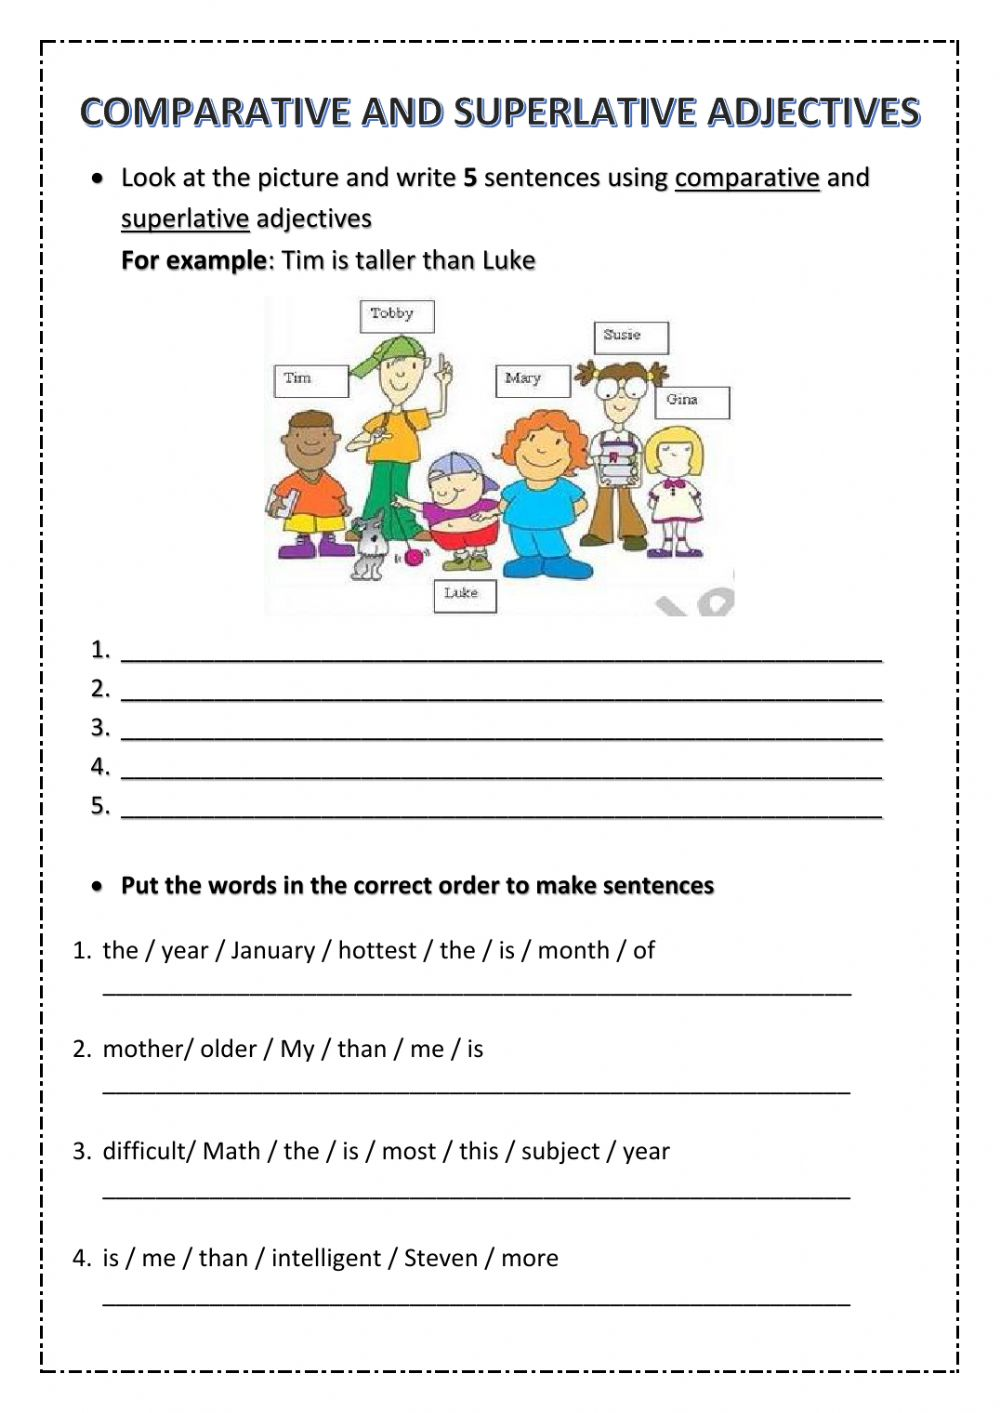 5th Grade Test Unit 6 Comparative And Superlative Adjectives Worksheet